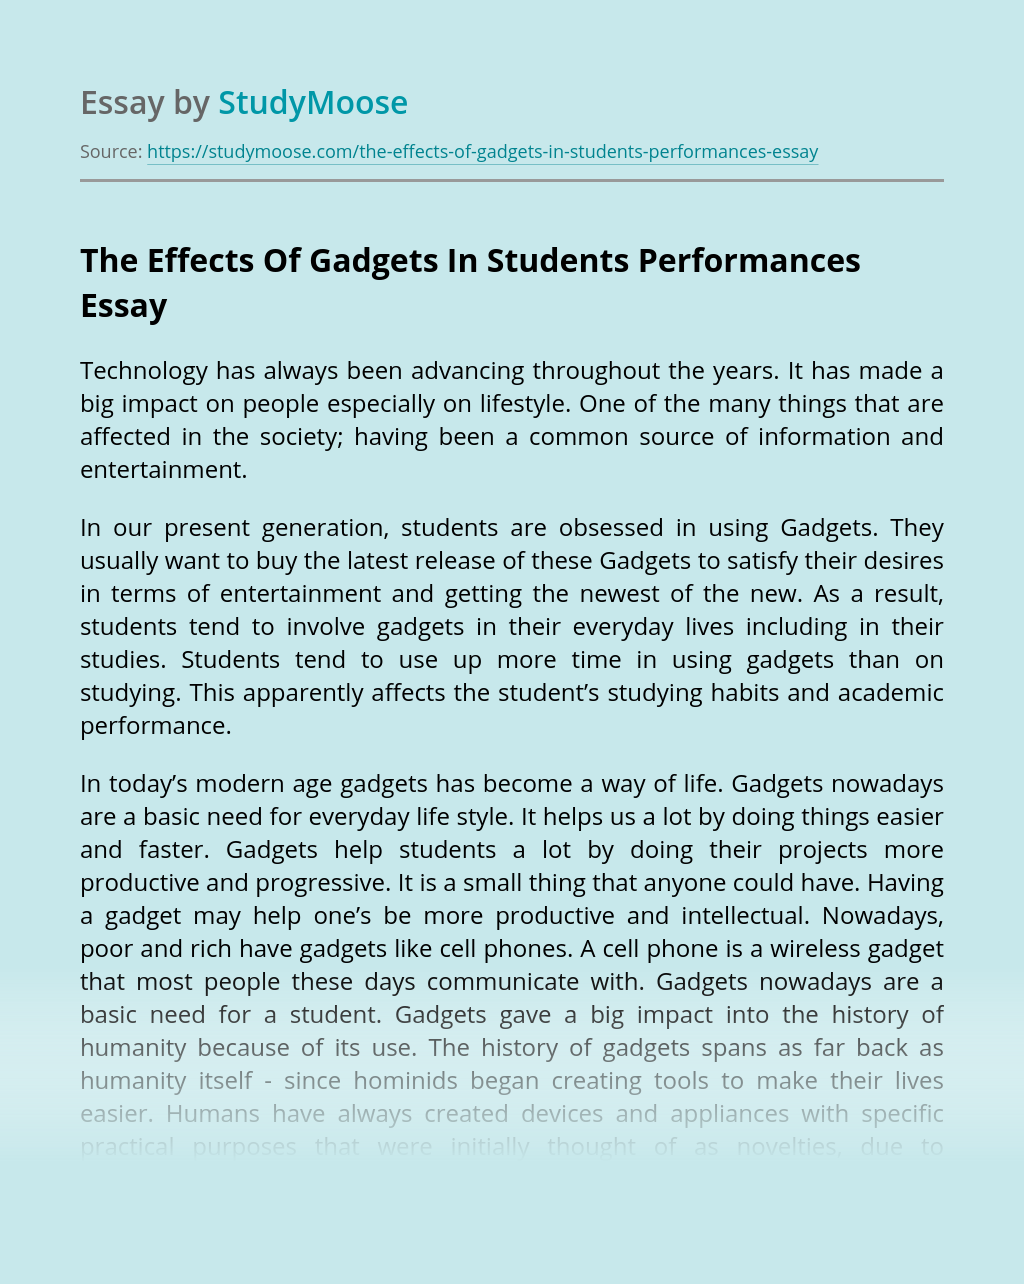 The Effects Of Gadgets In Students Performances